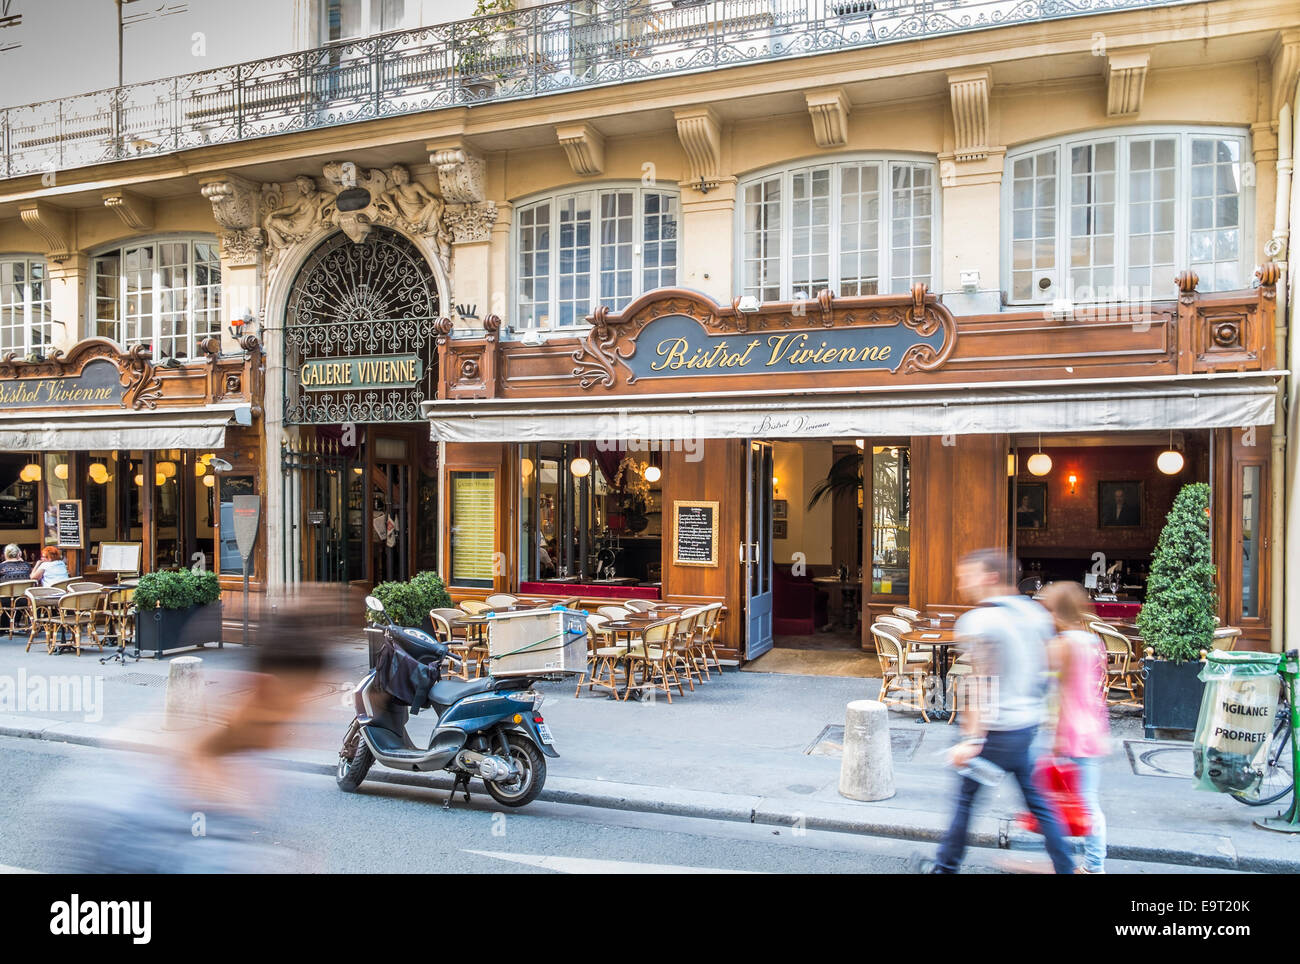 street scene in front of bistrot vivienne and entrance to the passage galerie vivienne from rue des petits-champs - Stock Image